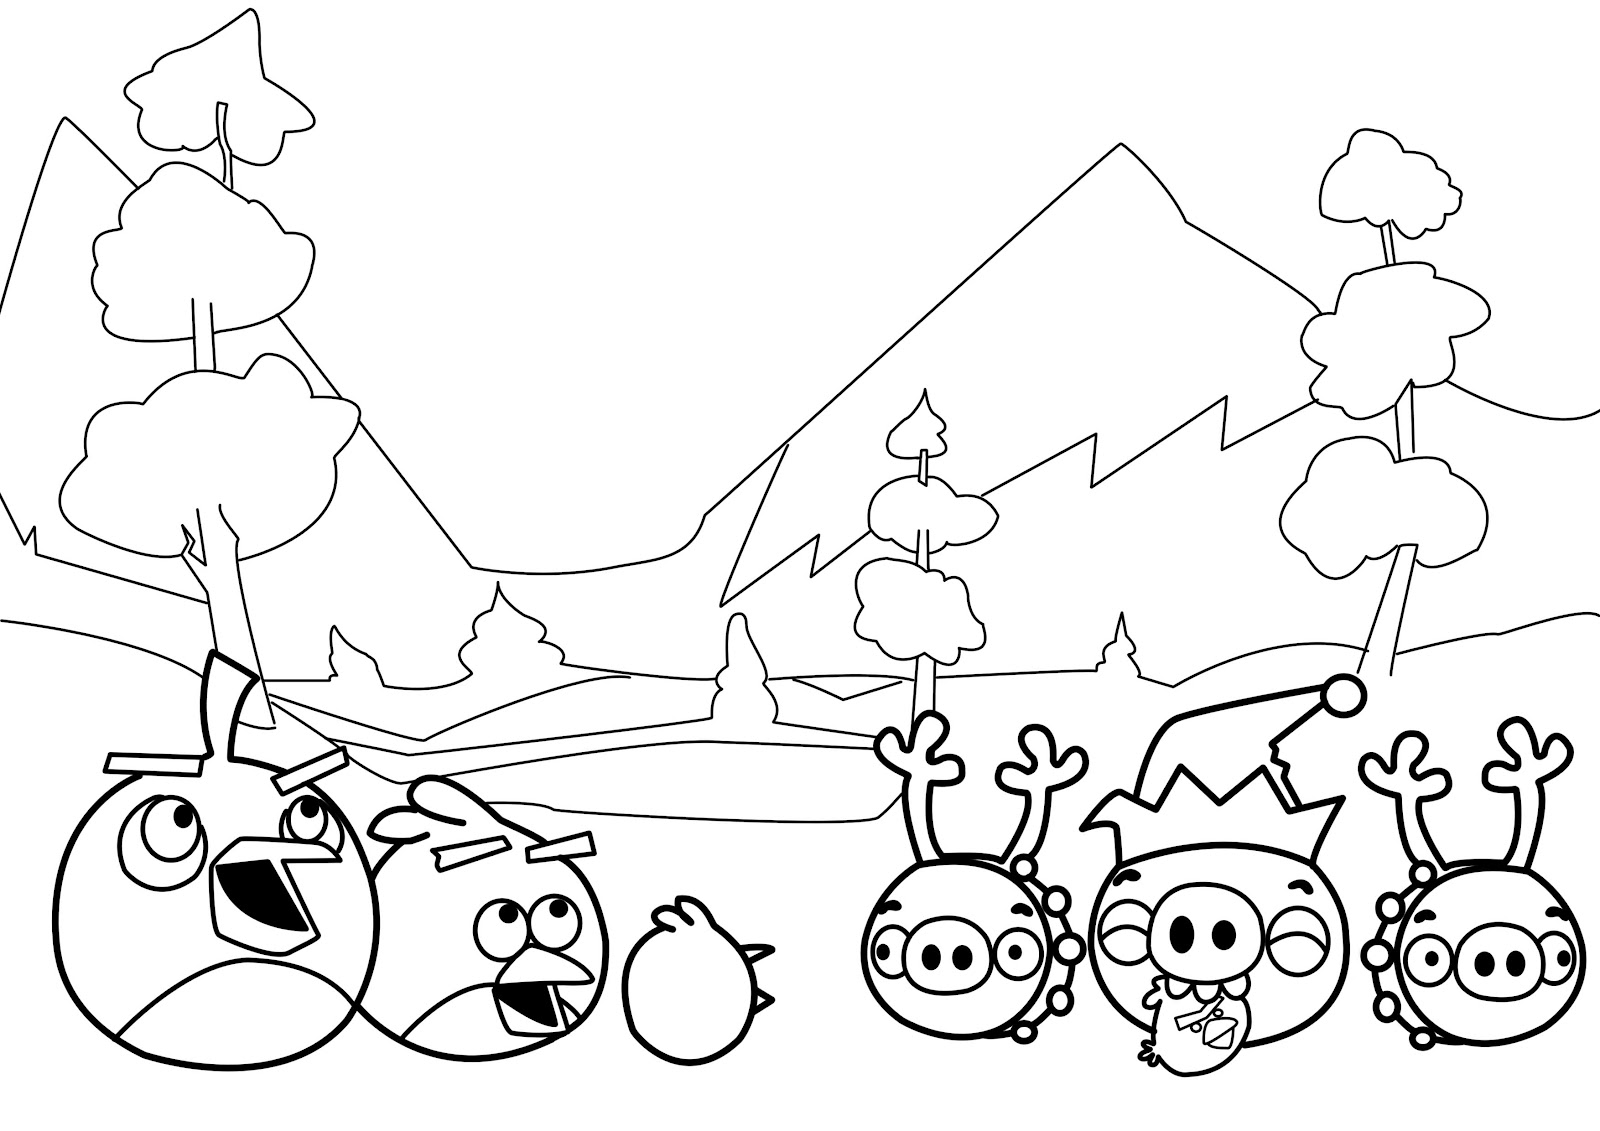 coloring pages for angry birds angry birds coloring ms cat39s honest world for pages coloring birds angry